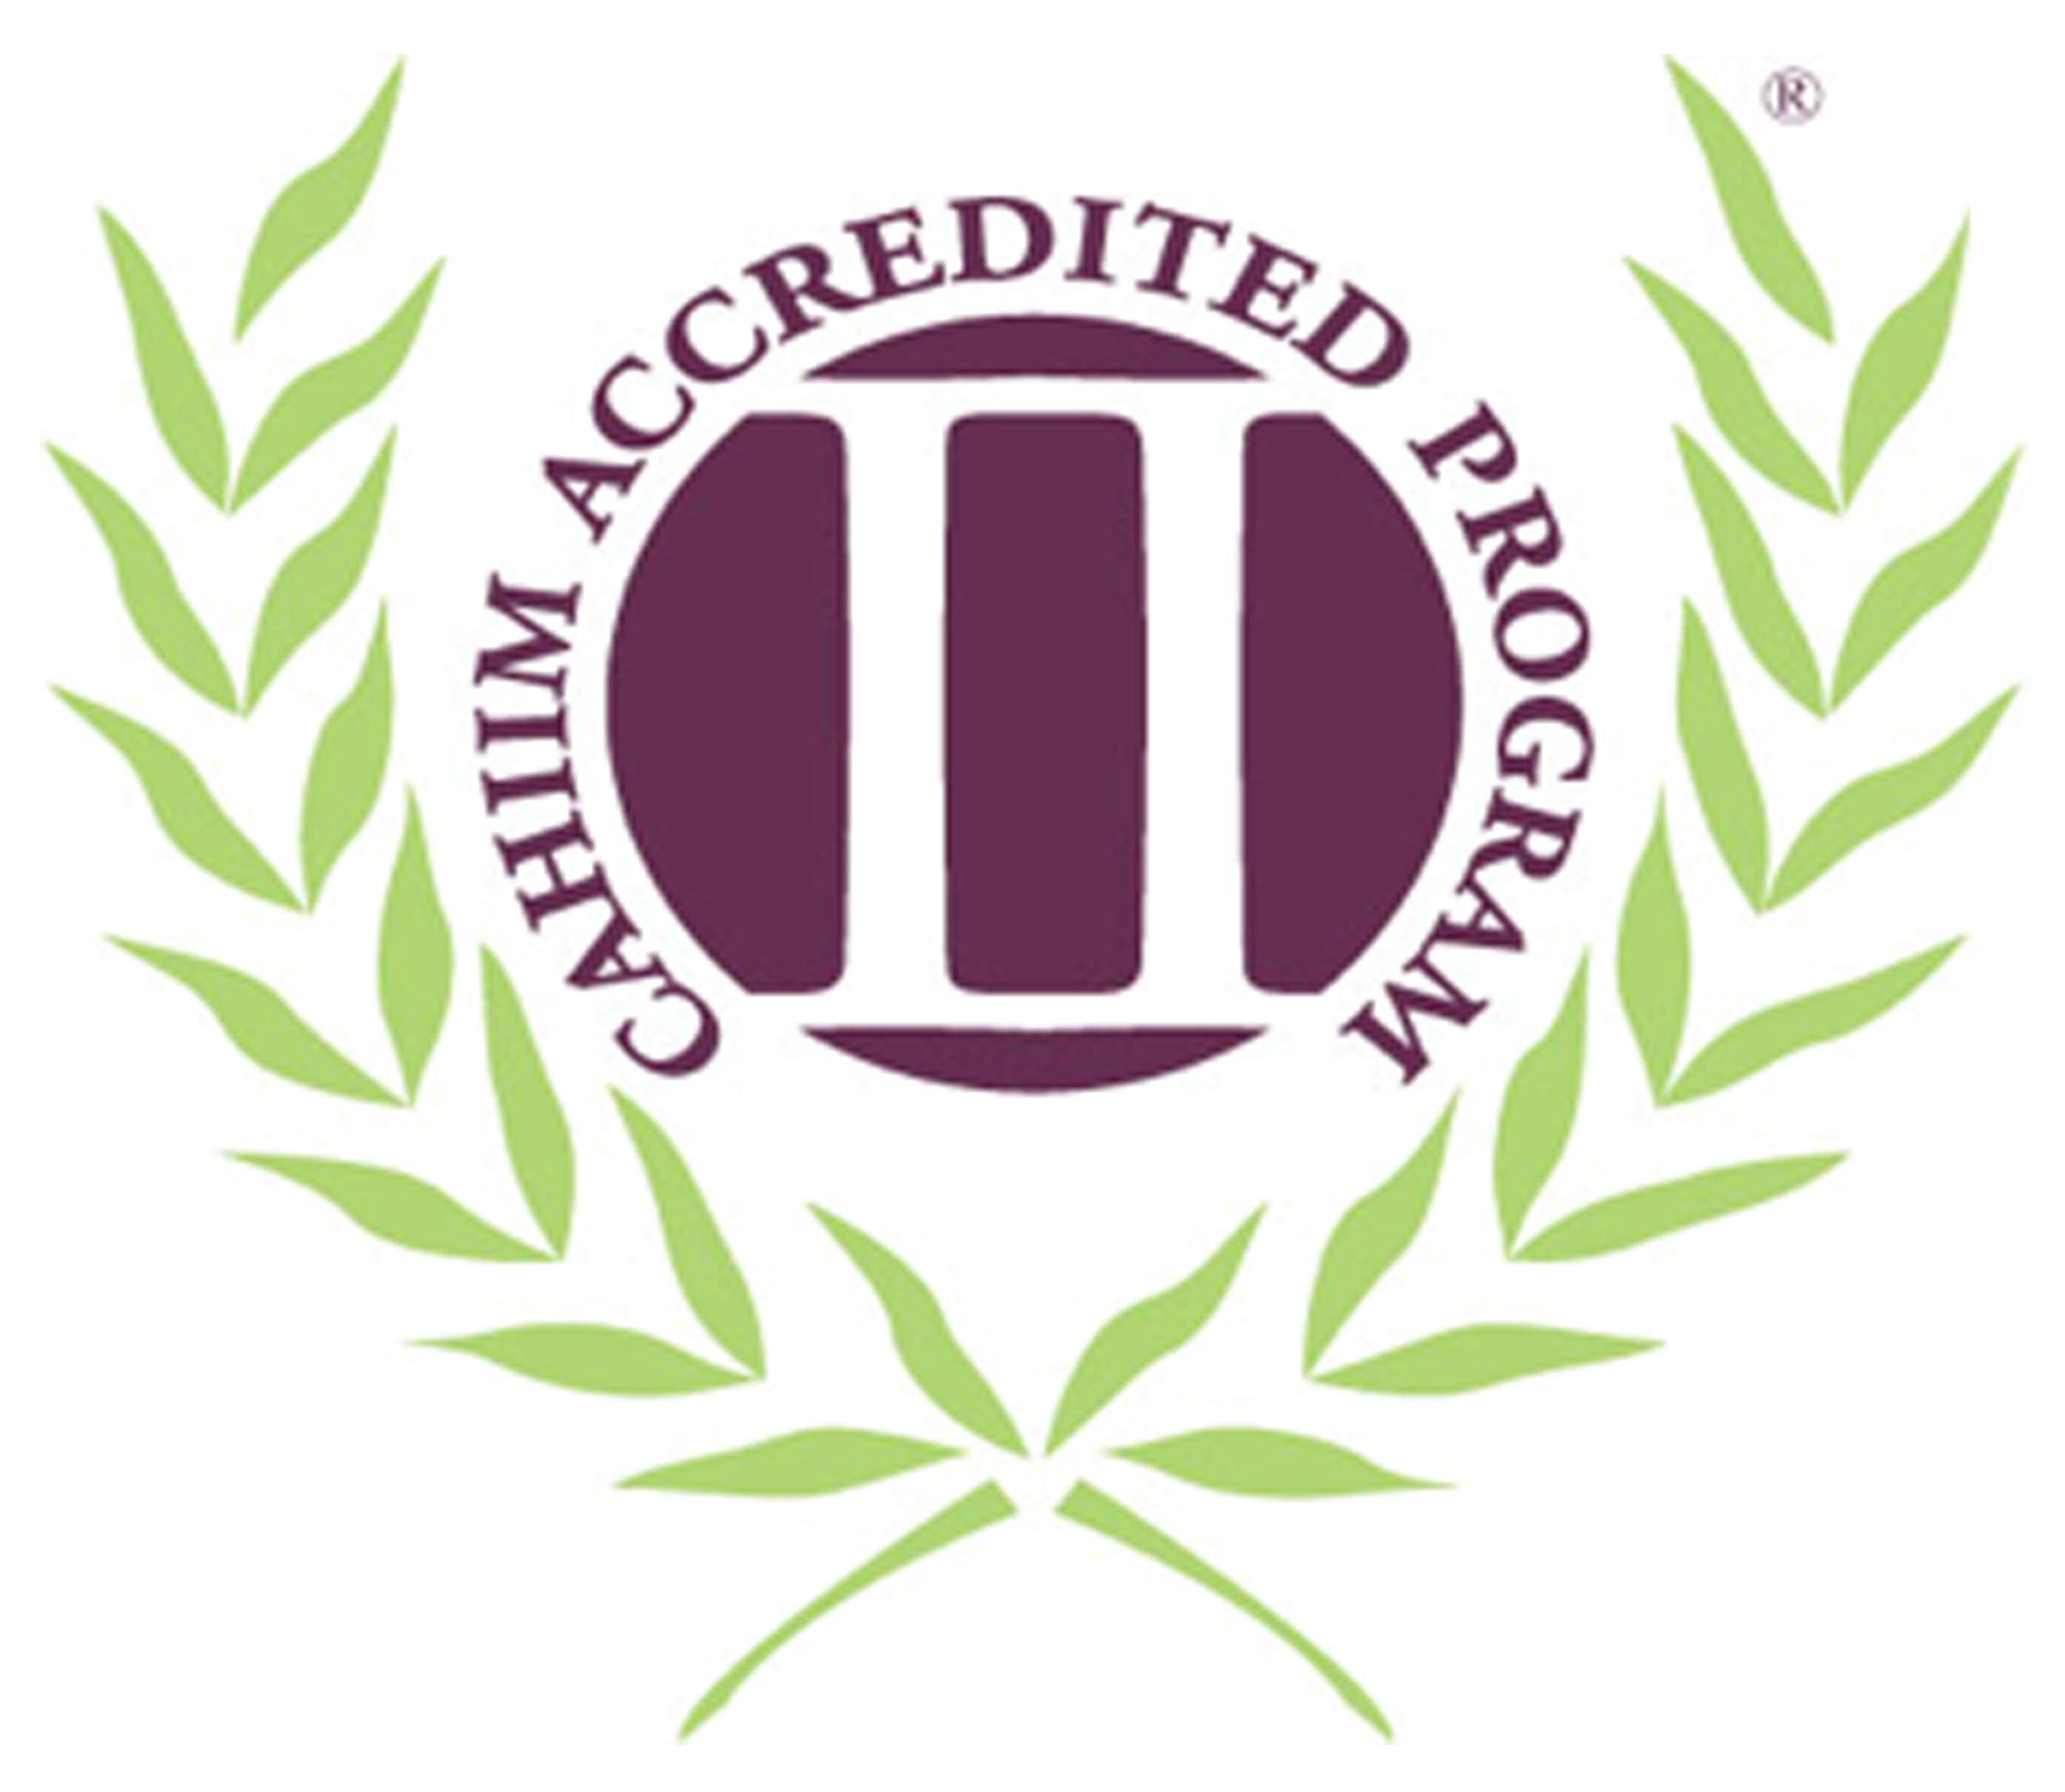 Commission on Accreditation for Health Informatics and Information Management logo